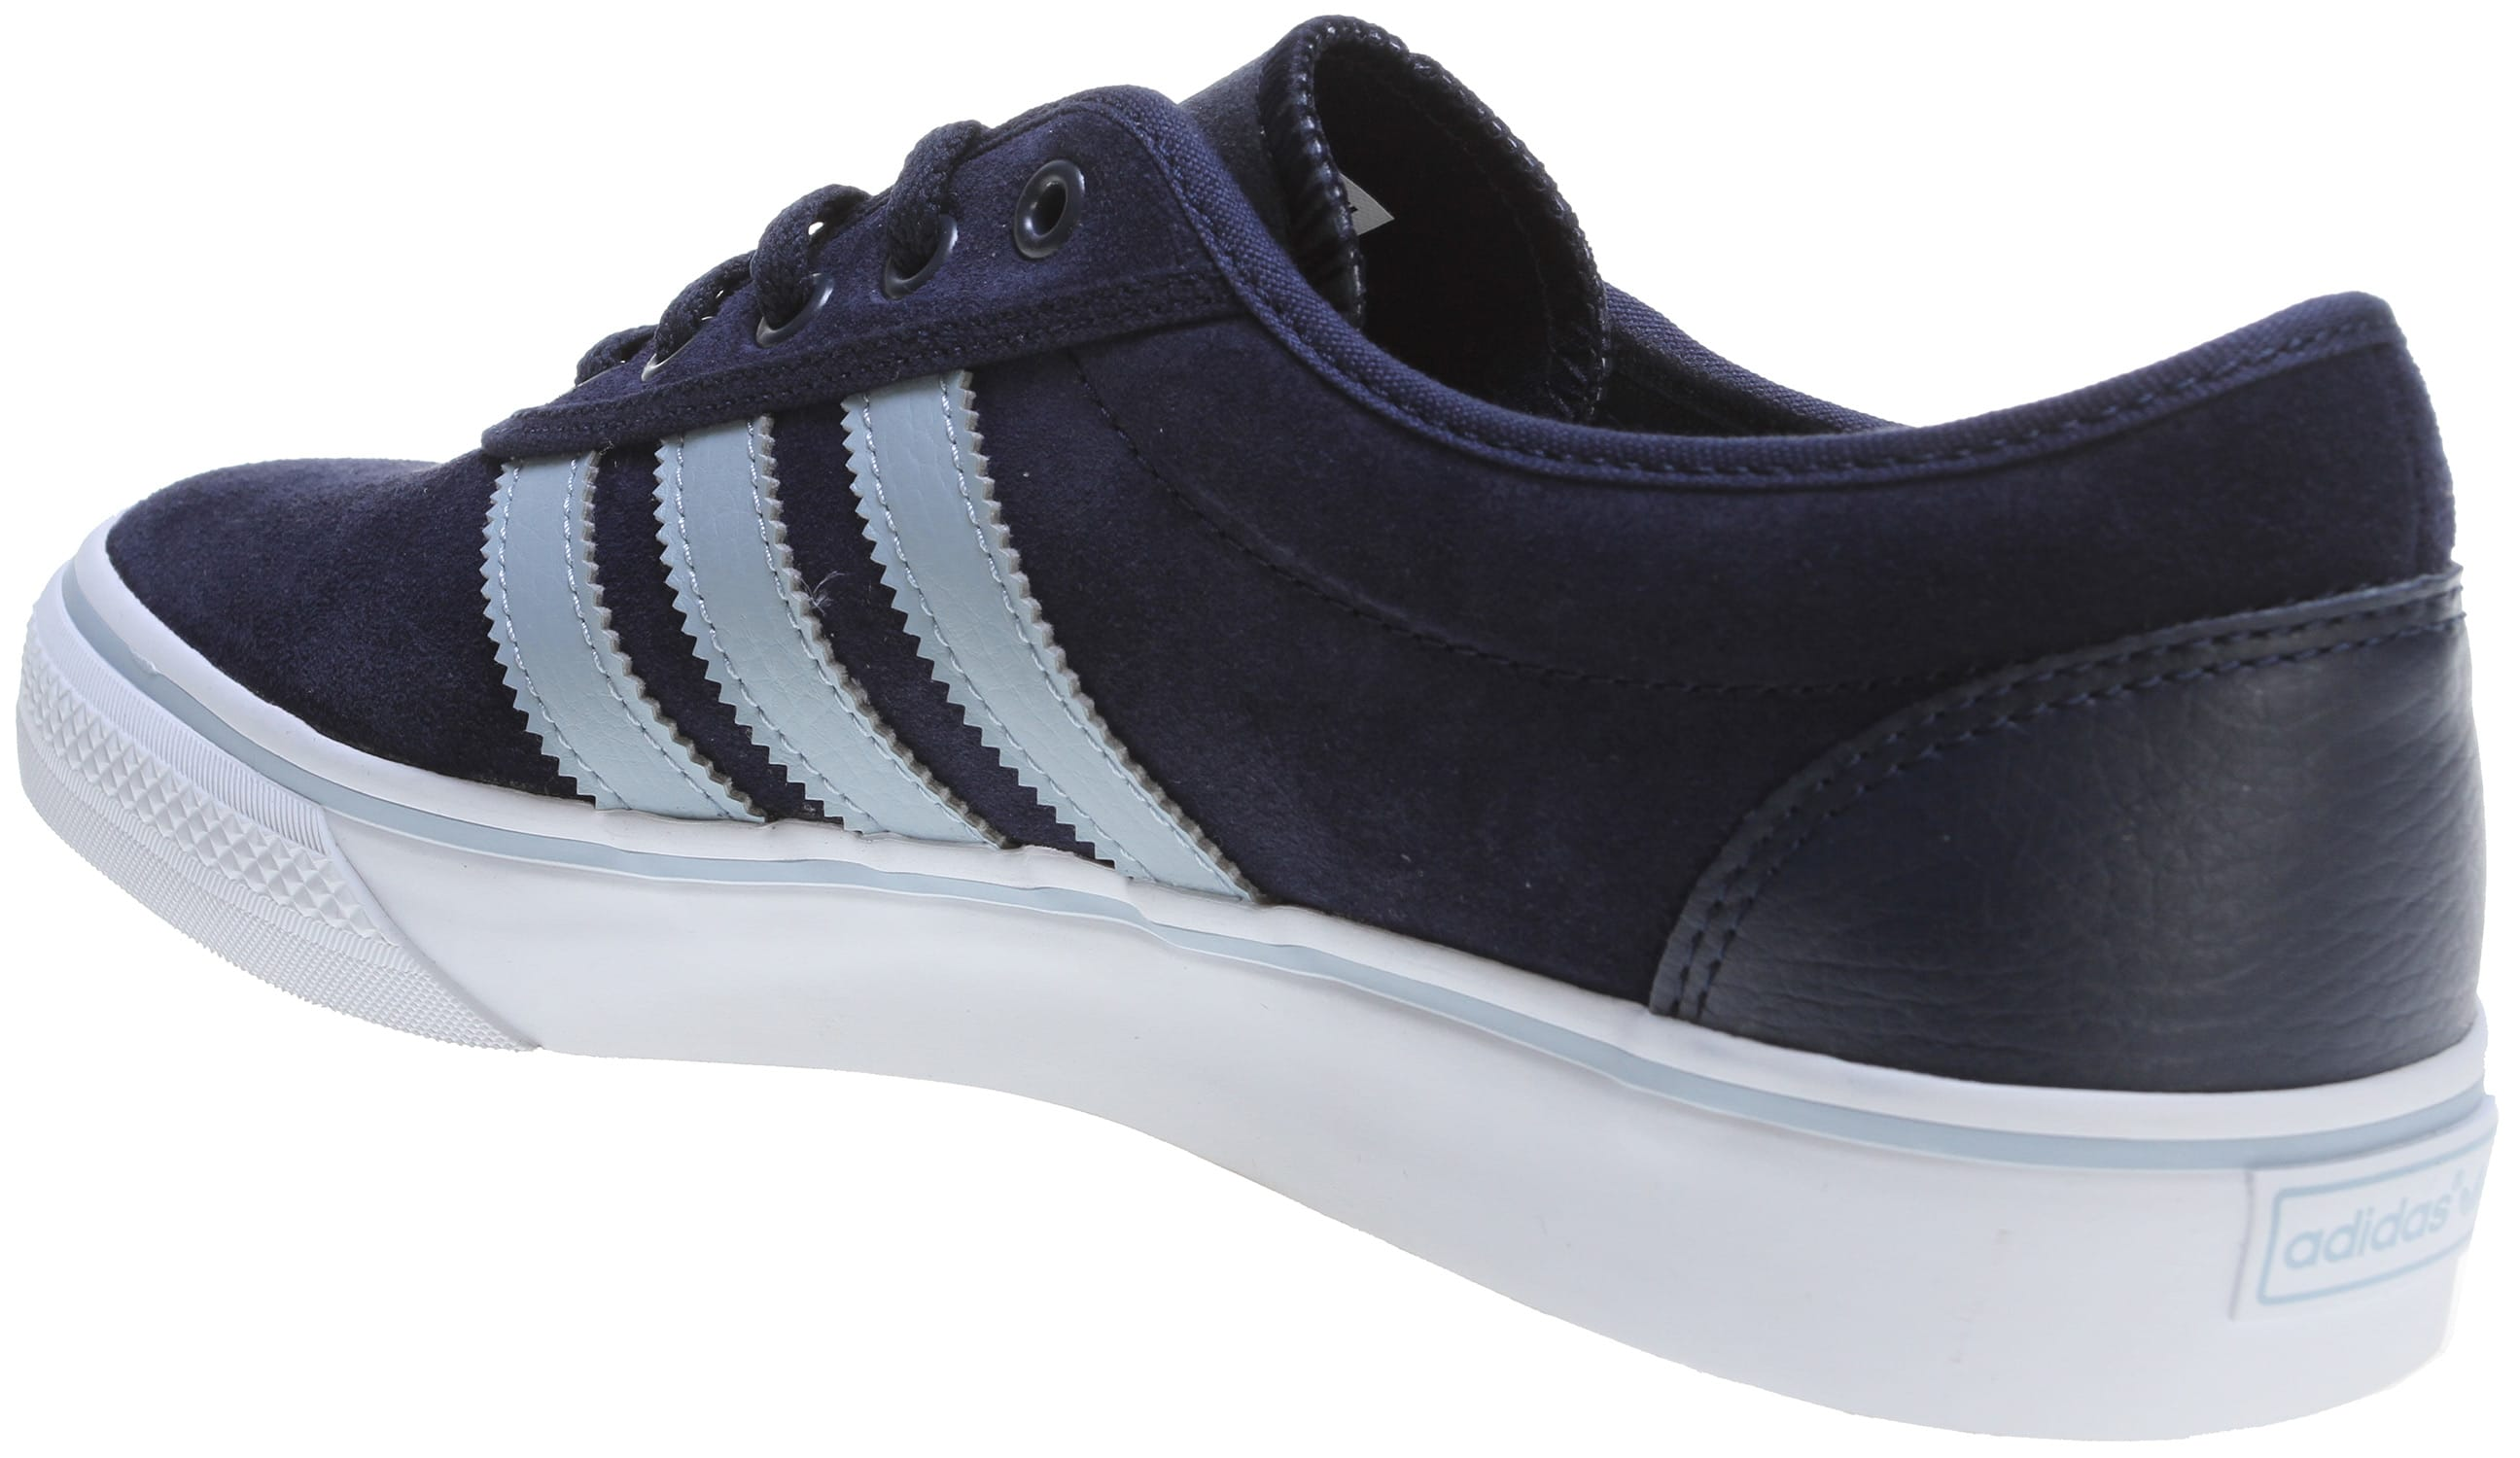 new product f8e4c ff24c Adidas Adi-Ease Skate Shoes - thumbnail 3